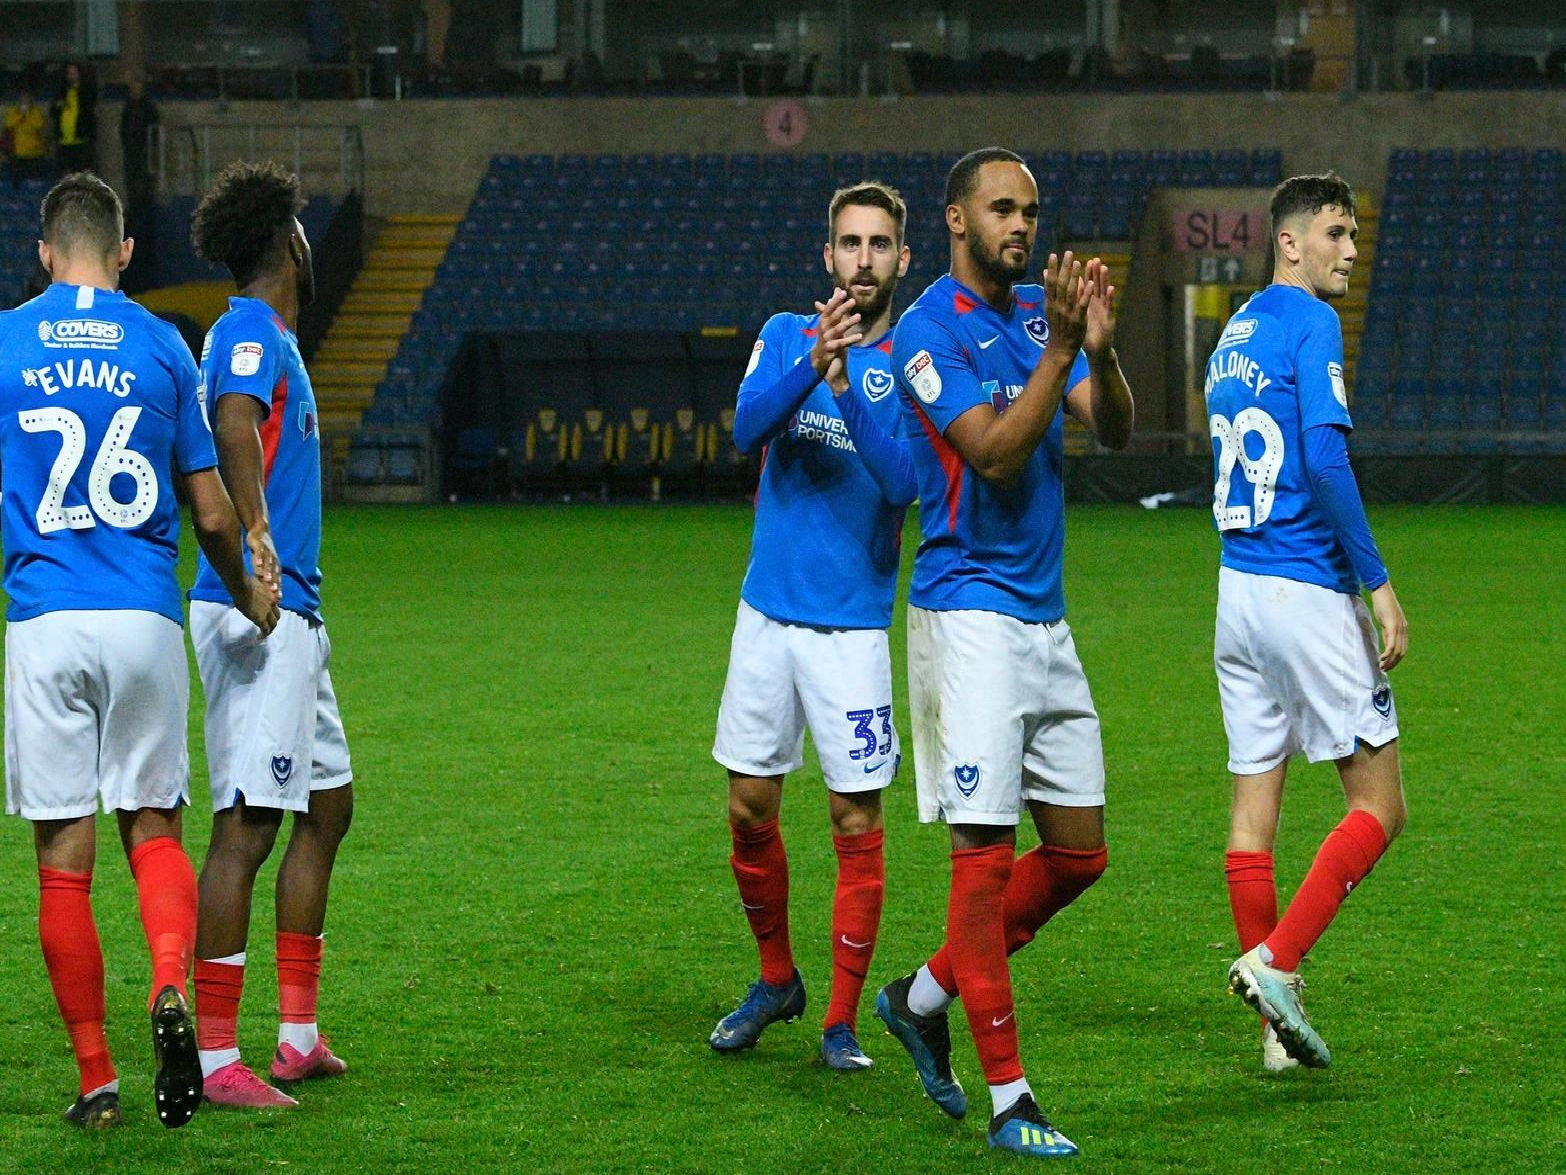 Portsmouth players including Ellis Harrison and Ben Close applauds the fans after the the team won the penalty shoot out at full time during the Leasing.com EFL Trophy match between Oxford United and Portsmouth at the Kassam Stadium, Oxford, England on 8 October 2019.